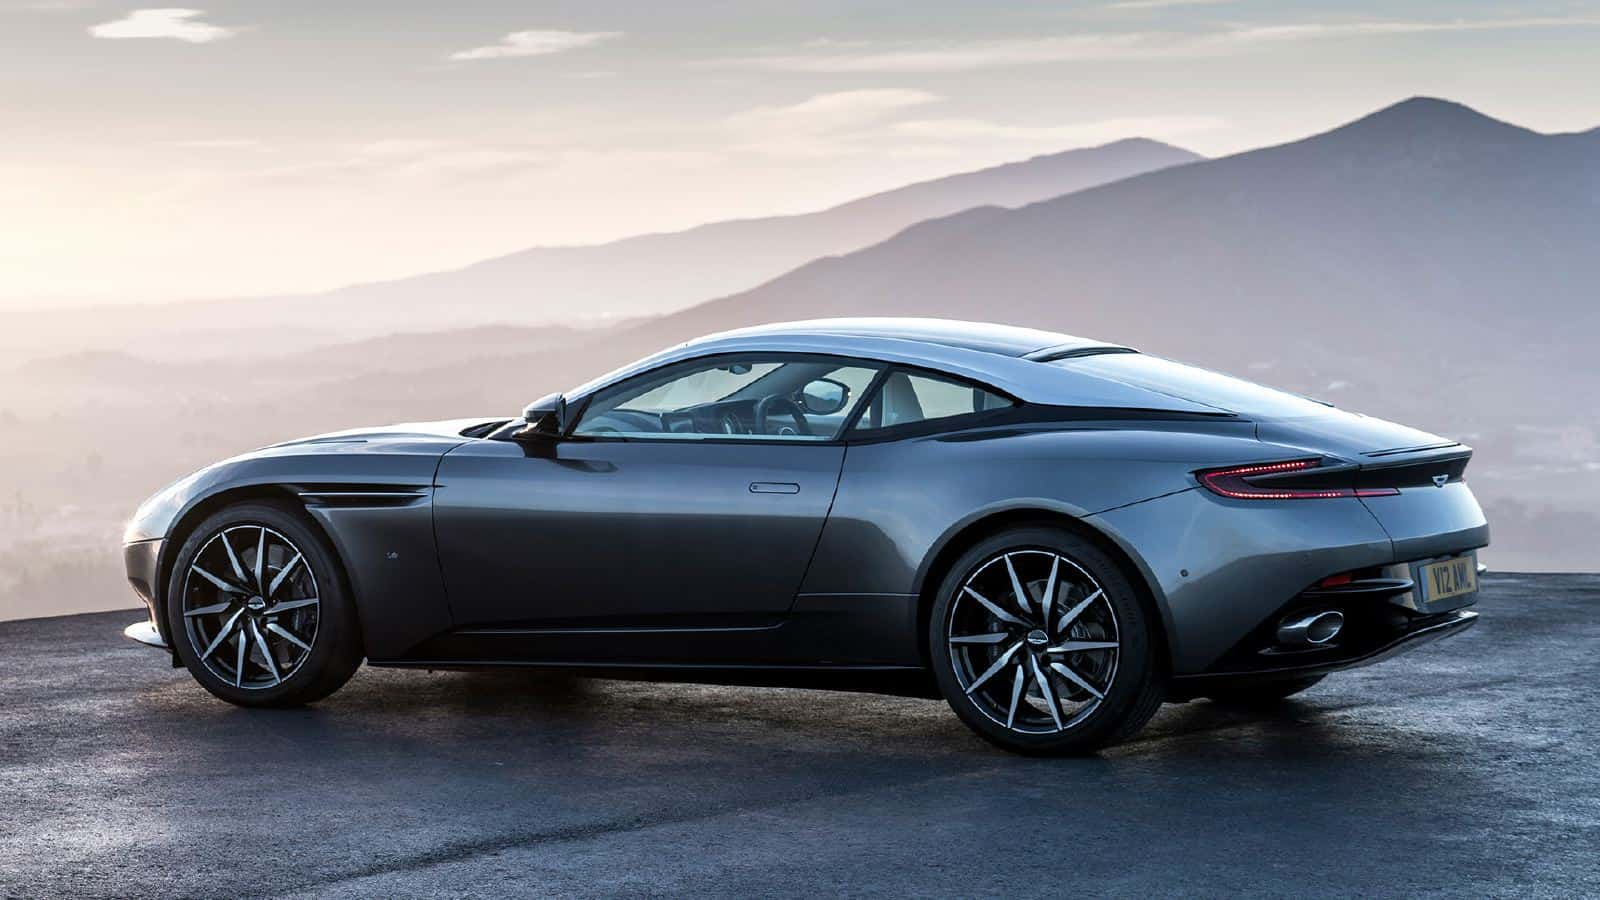 meet the designers an in depth look at the design of the aston martin db11. Black Bedroom Furniture Sets. Home Design Ideas